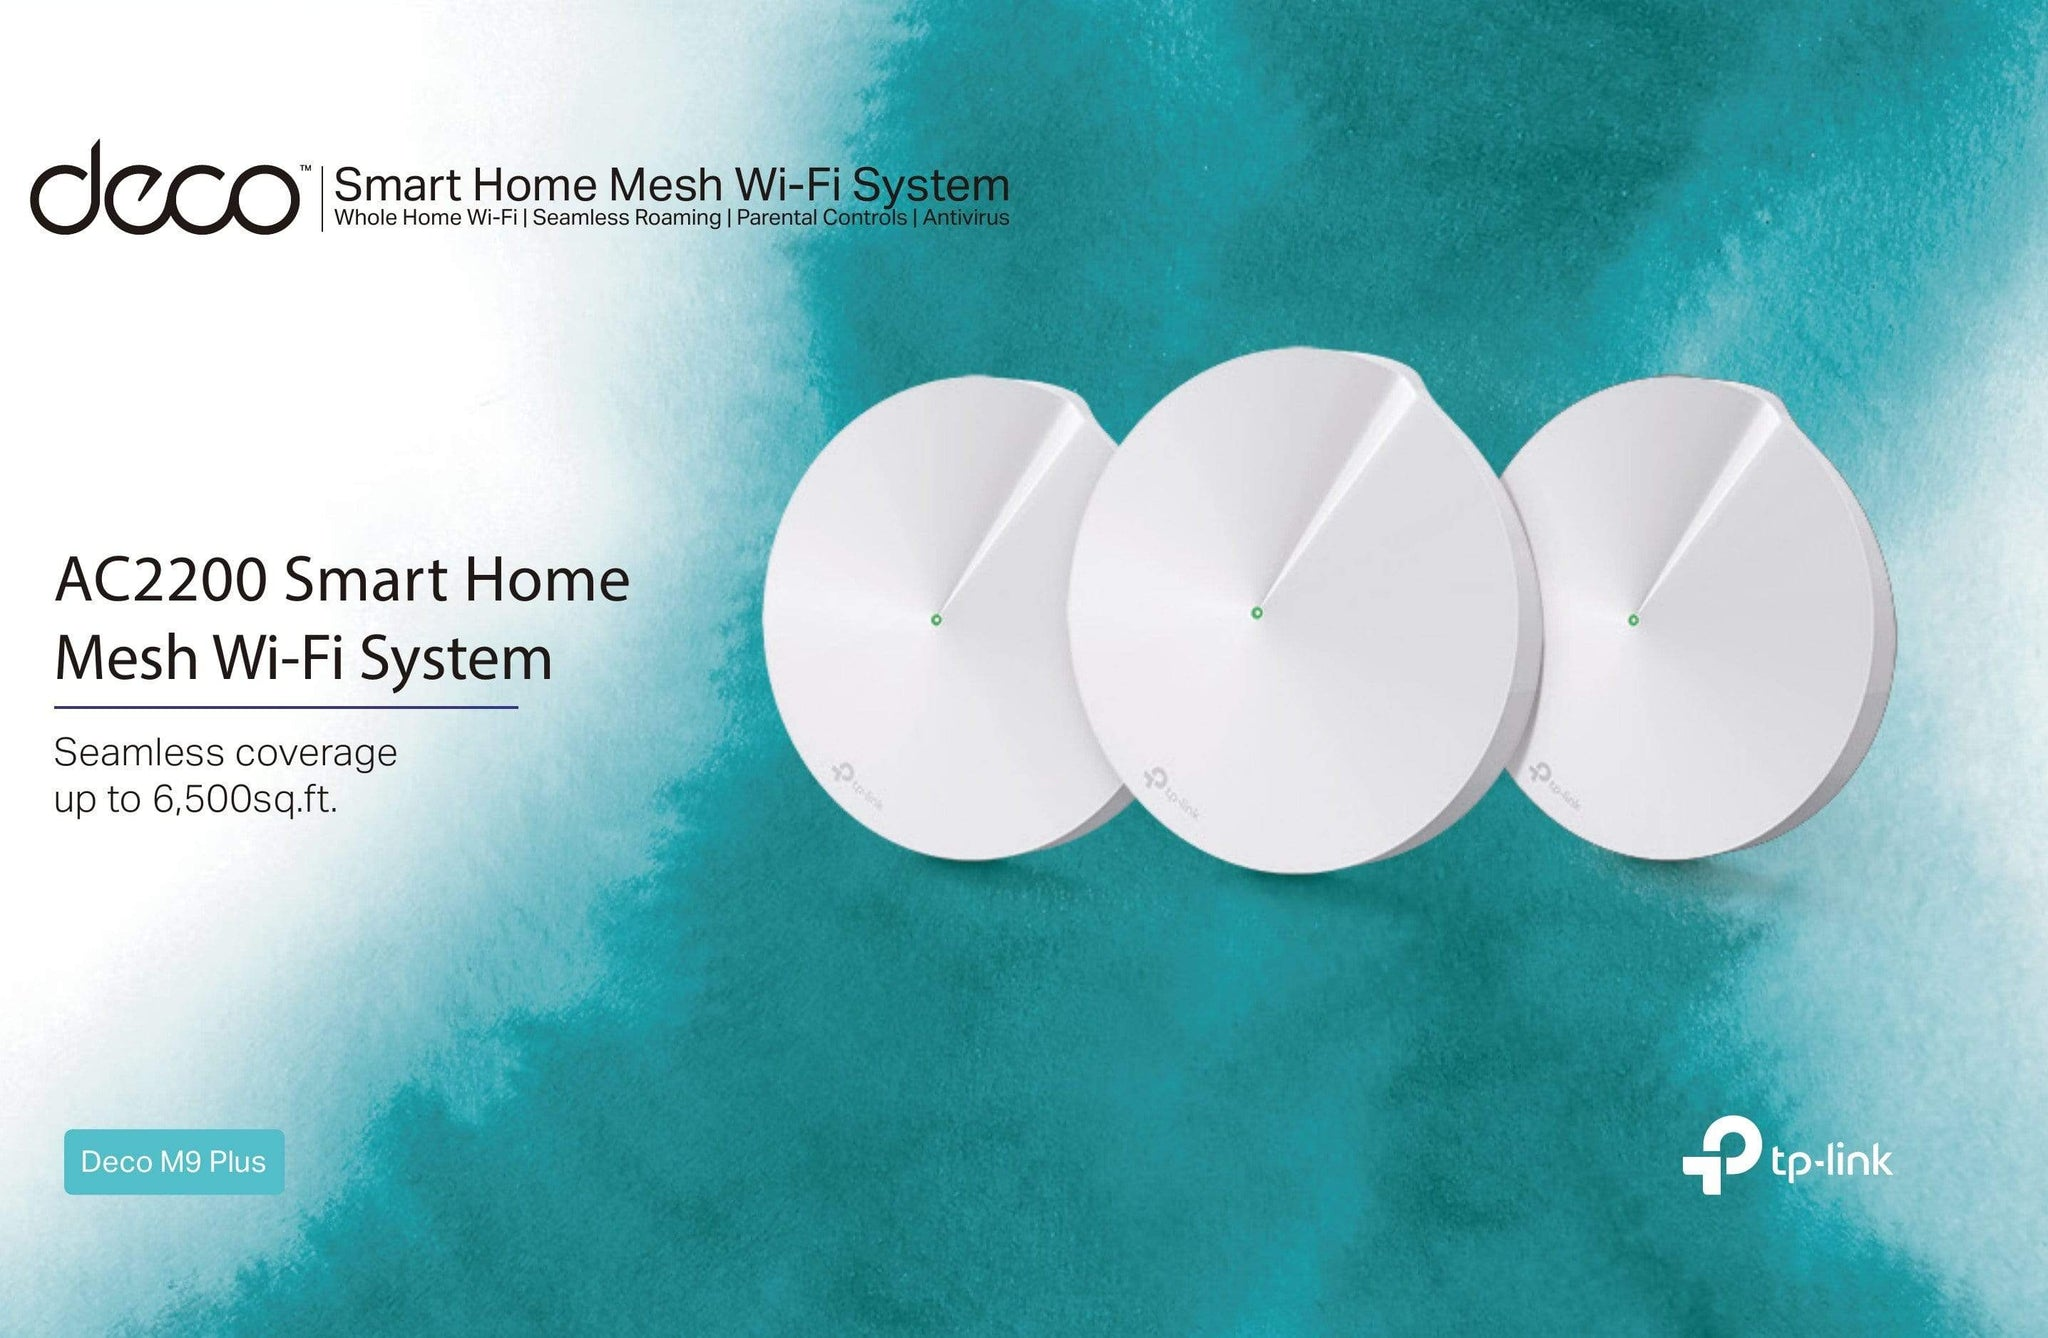 TP-LINK Deco M9 Plus Smart Home Mesh Wi-Fi System 3 Pack